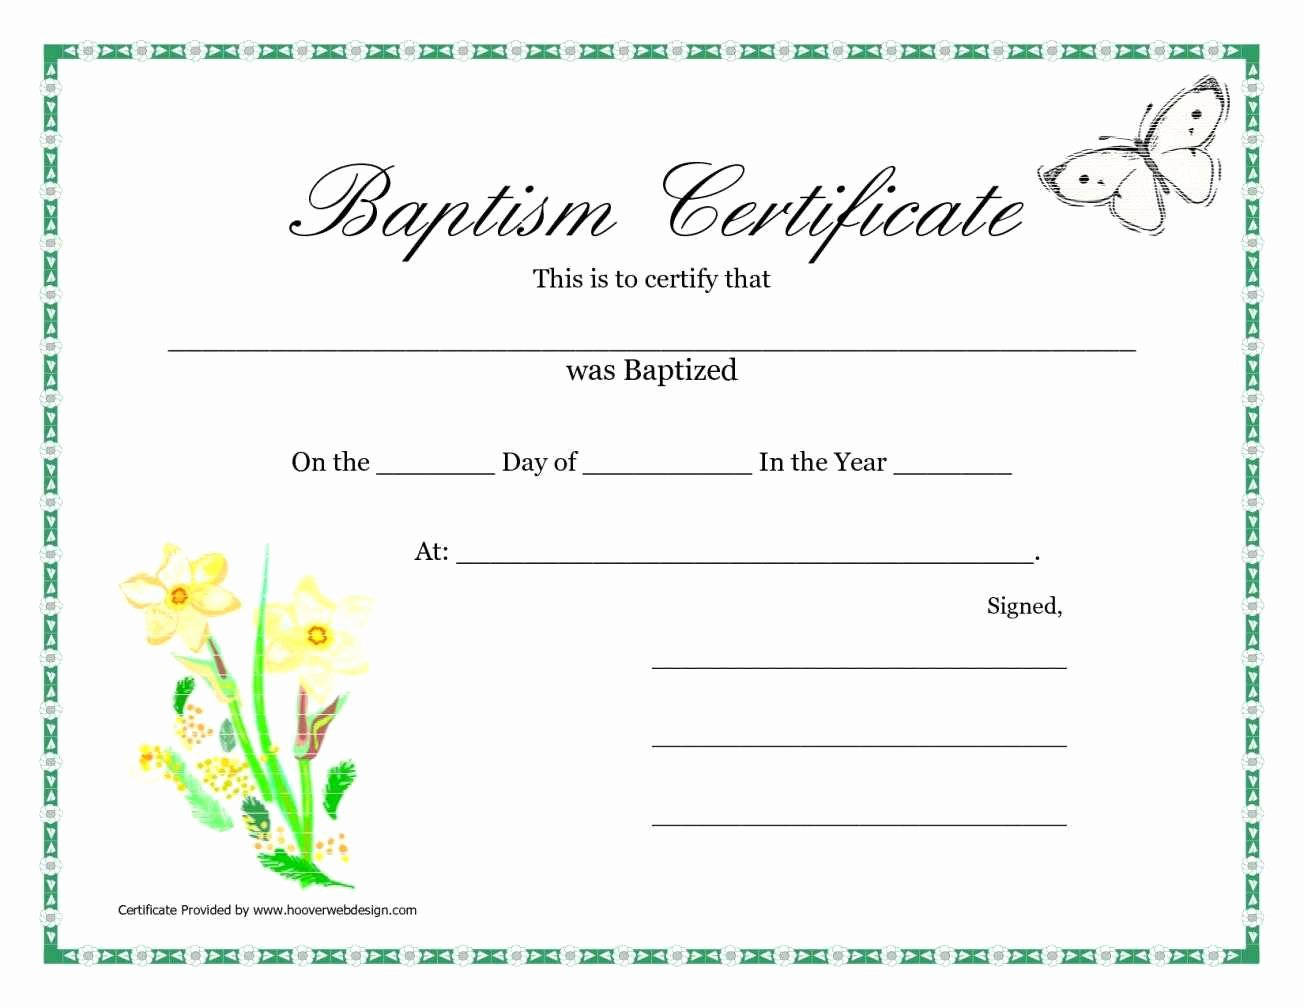 Baptism Certificate Template Free Fresh Sample Baptism Certificate Templates